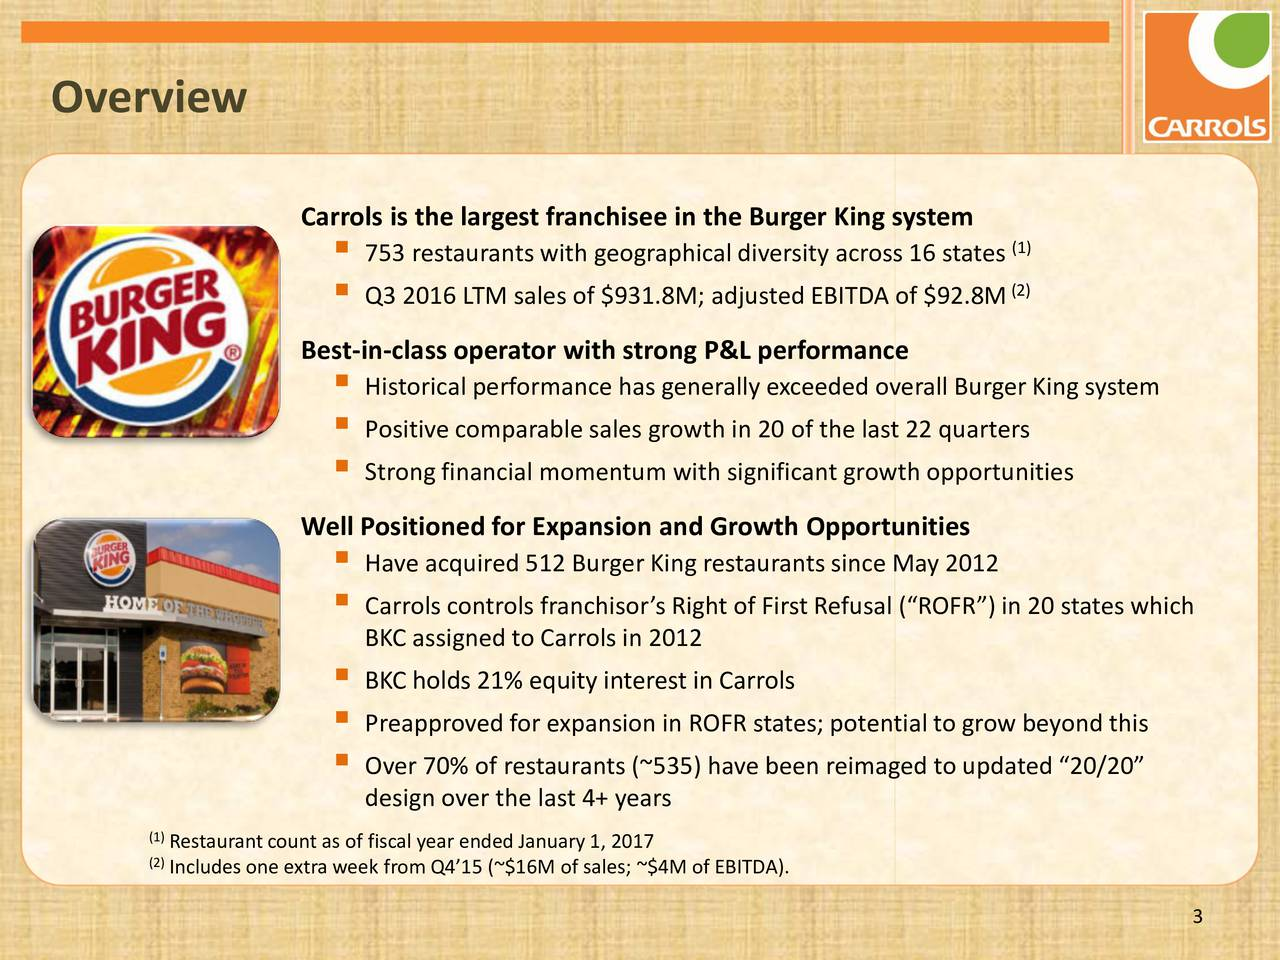 Carrols is the largest franchisee in the Burger King syst(1) 753 restaurants with geographical diversity across 16 states Q3 2016 LTM sales of $931.8M; adjusted EBITDA of $92.8M Best-in-class operator with strong P&L performance Historical performance has generally exceeded overall Burger King system Positive comparable sales growth in 20 of the last 22 quarters Strong financial momentum with significant growth opportunities Well Positioned for Expansion and Growth Opportunities Have acquired 512 Burger King restaurants since May 2012 Carrols controls franchisors Right of First Refusal (ROFR) in 20 states which BKC assigned to Carrols in 2012 BKC holds 21% equity interest in Carrols Preapproved for expansion in ROFR states; potential to grow beyond this Over 70% of restaurants (~535) have been reimaged to updated 20/20 design over the last 4+ years (1Restaurantcount as of fiscal year ended January 1, 2017 (2Includes one extra week from Q415 (~$16M of sales; ~$4M of EBITDA). 3